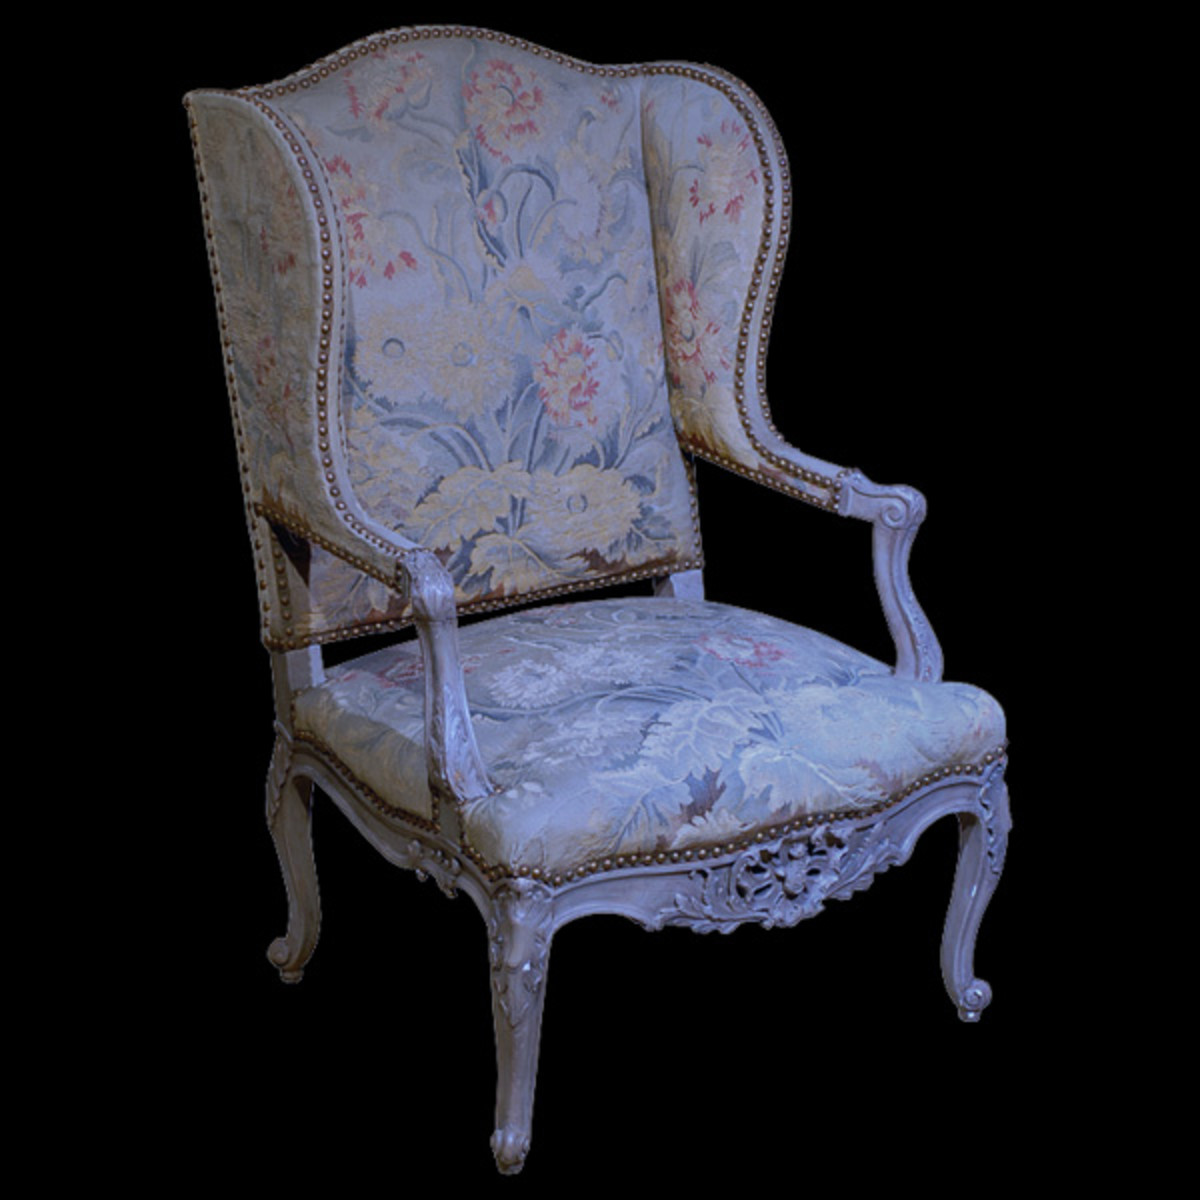 The infamous 'Death Chair'